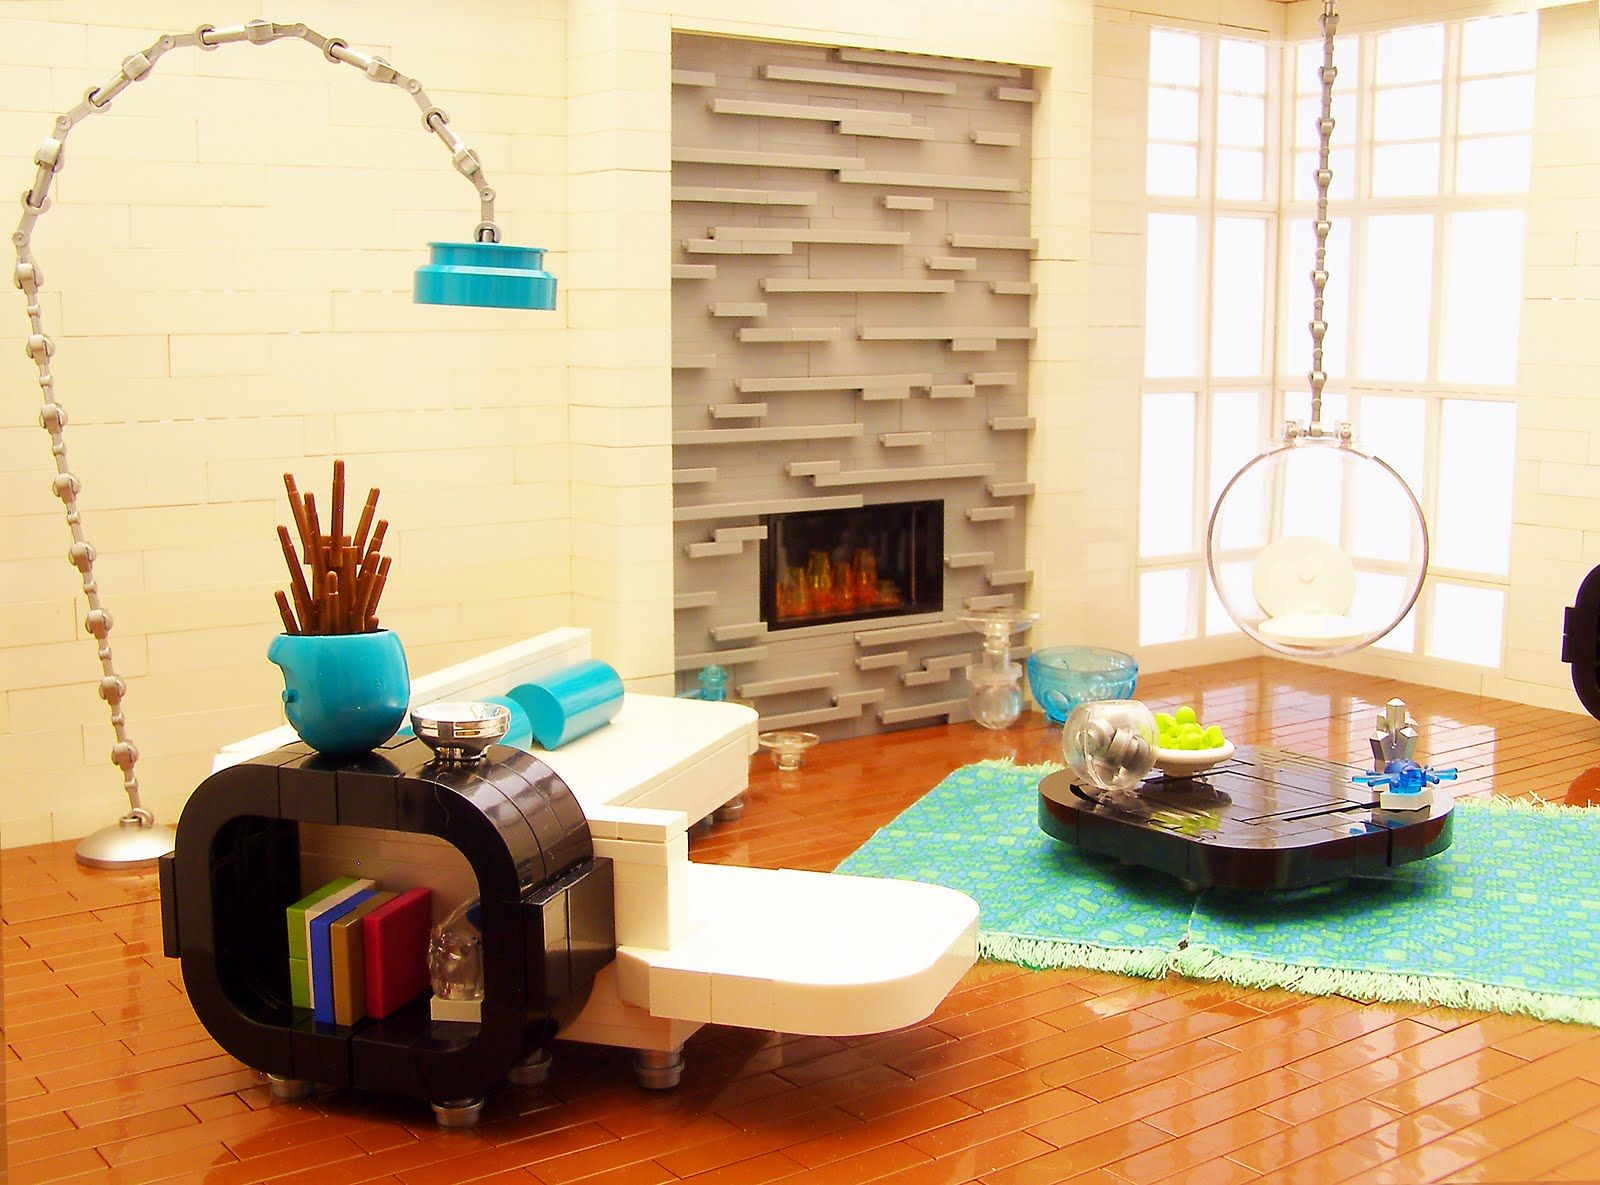 Lego moc really modern apartment with really cool furniture ...